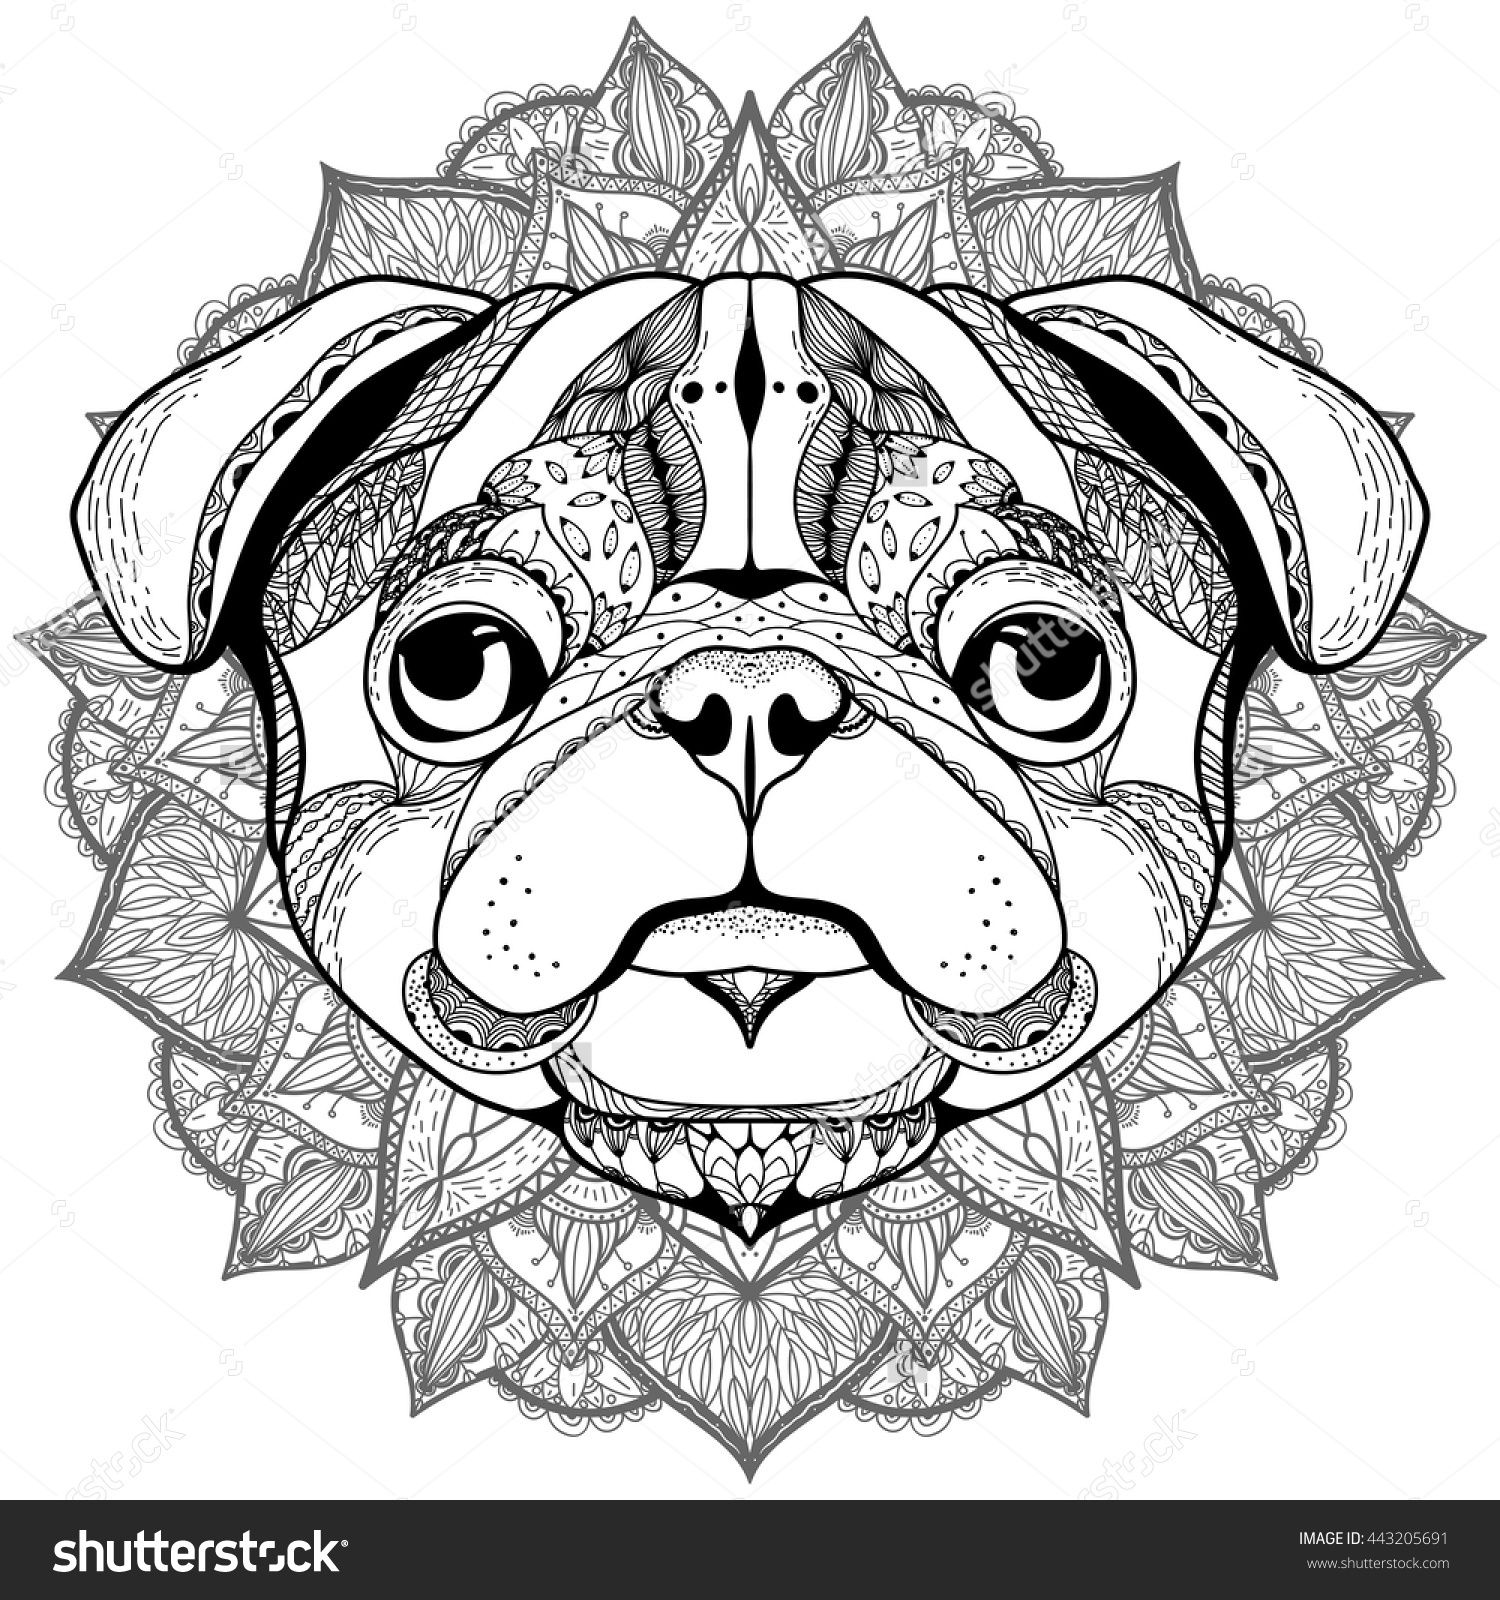 zentangle stylized cartoon of pug hand drawn sketch for